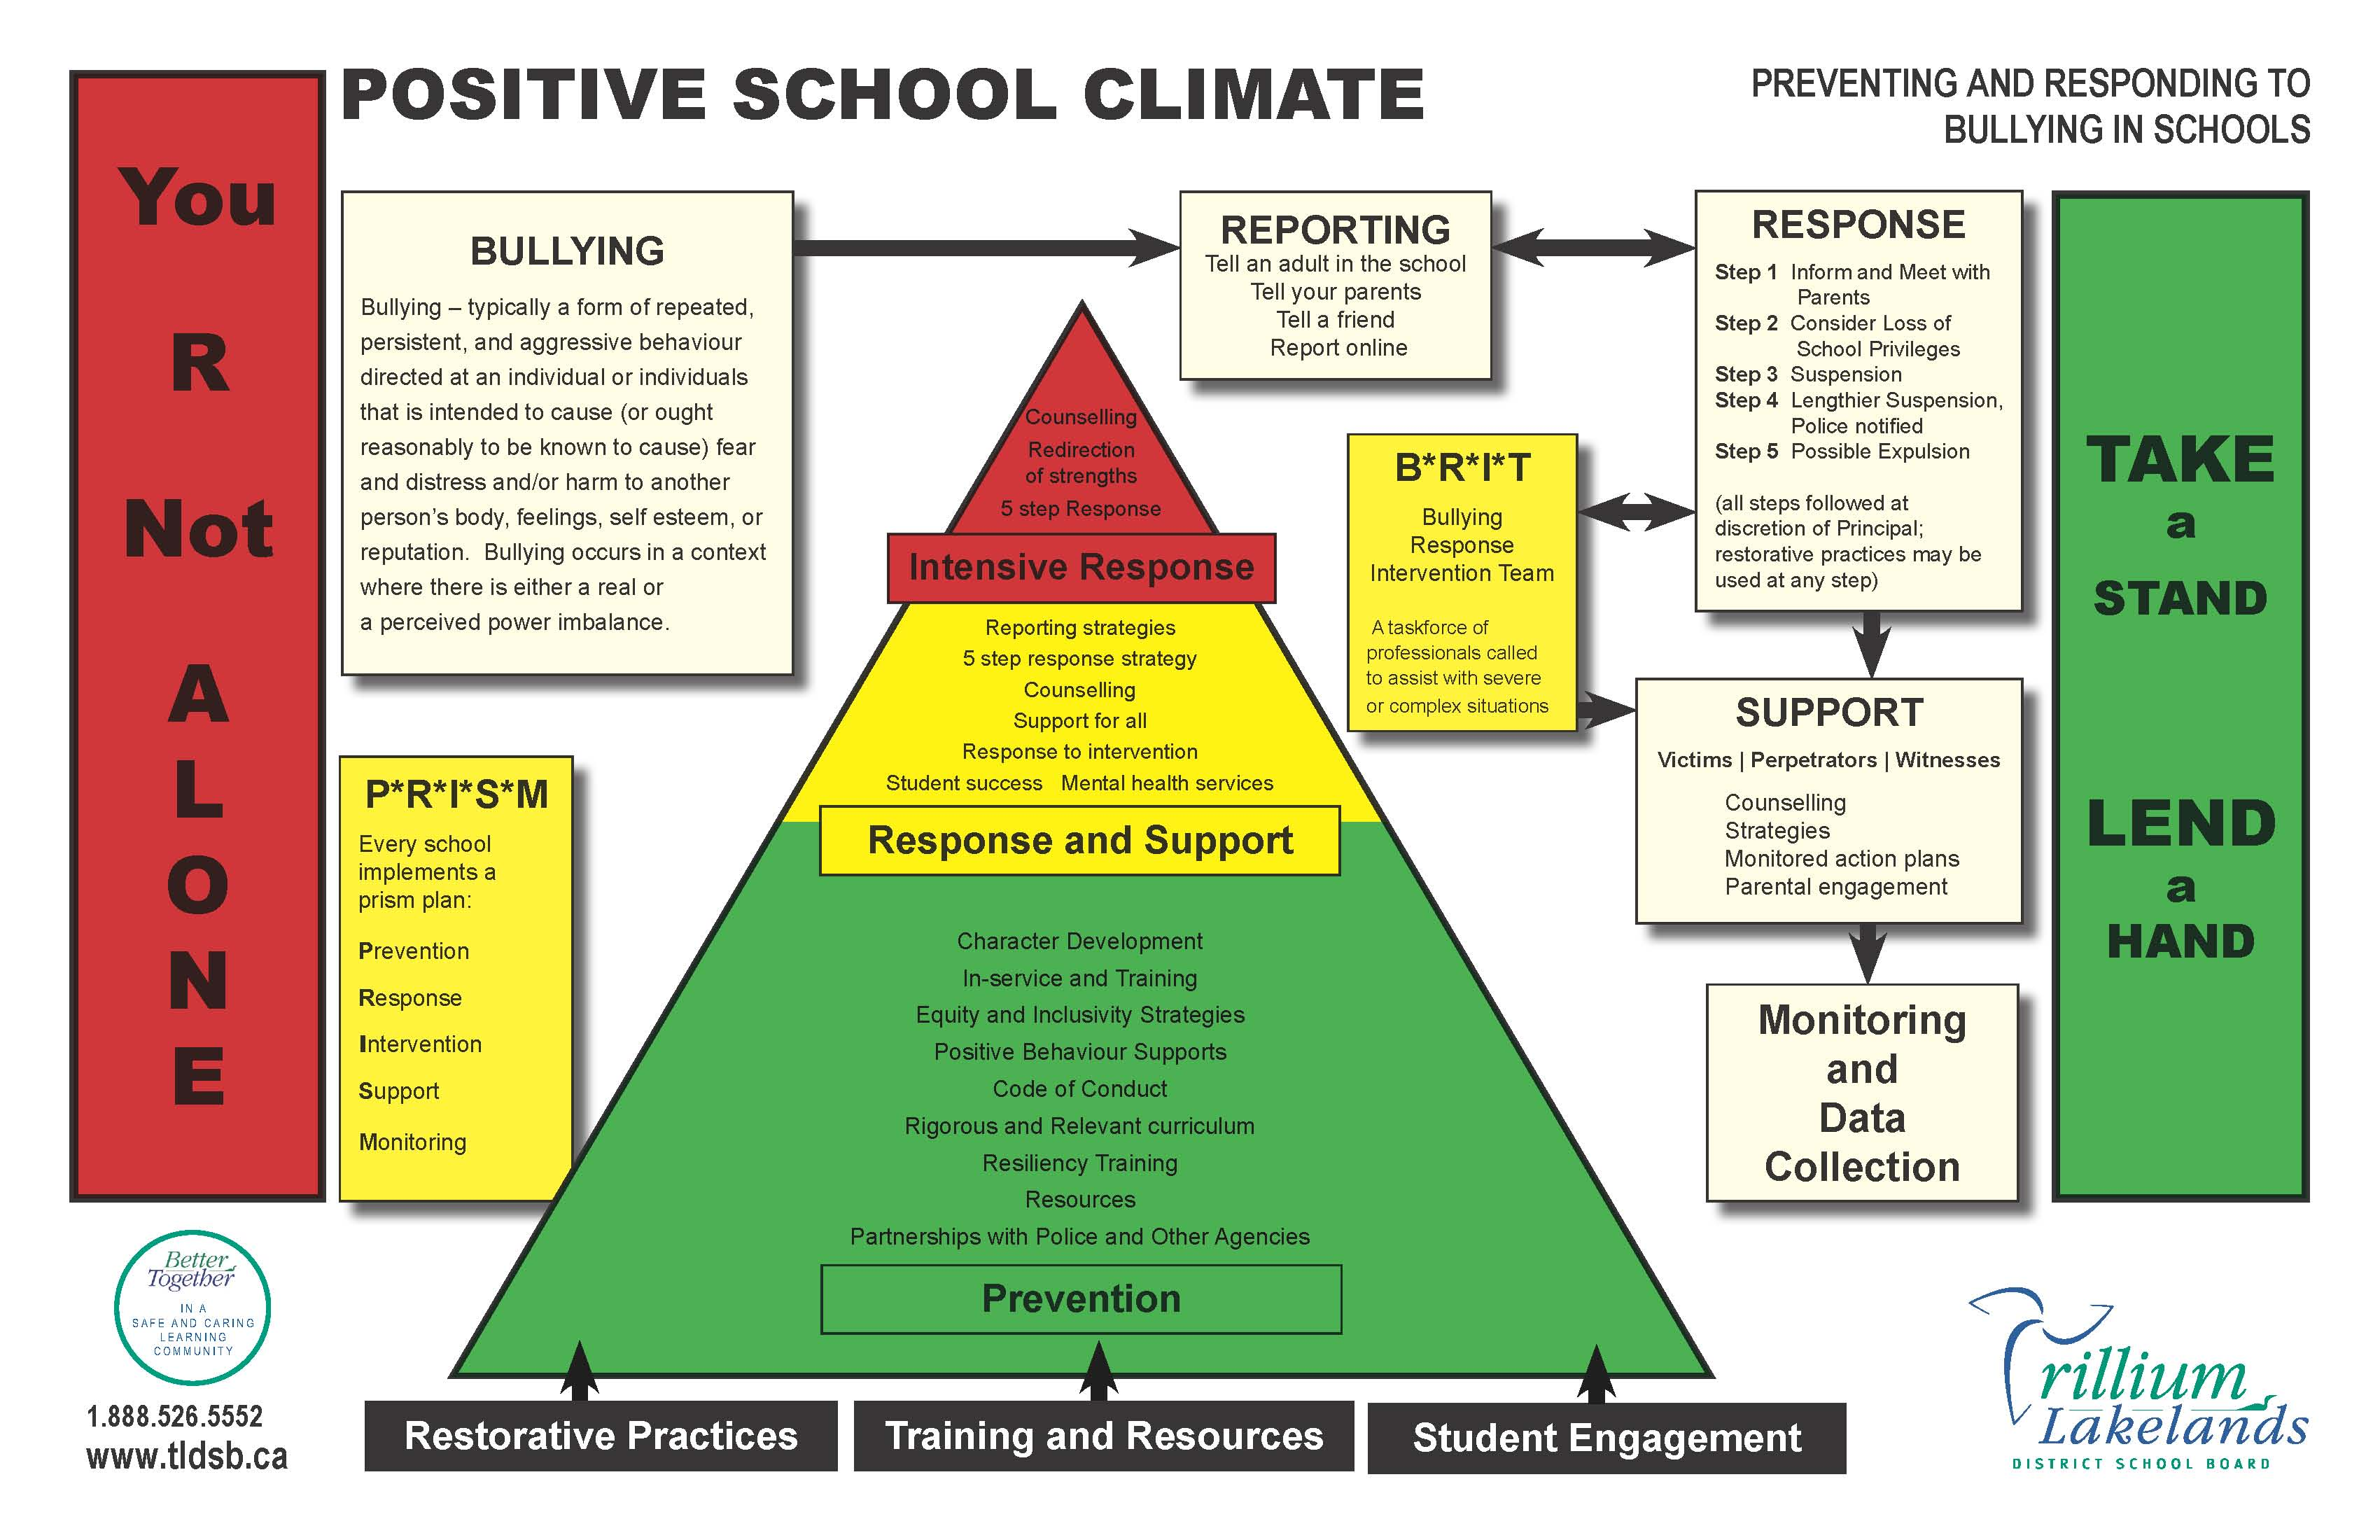 Bully prevention model implemented elementary schools extracted from www.tldsb.ca